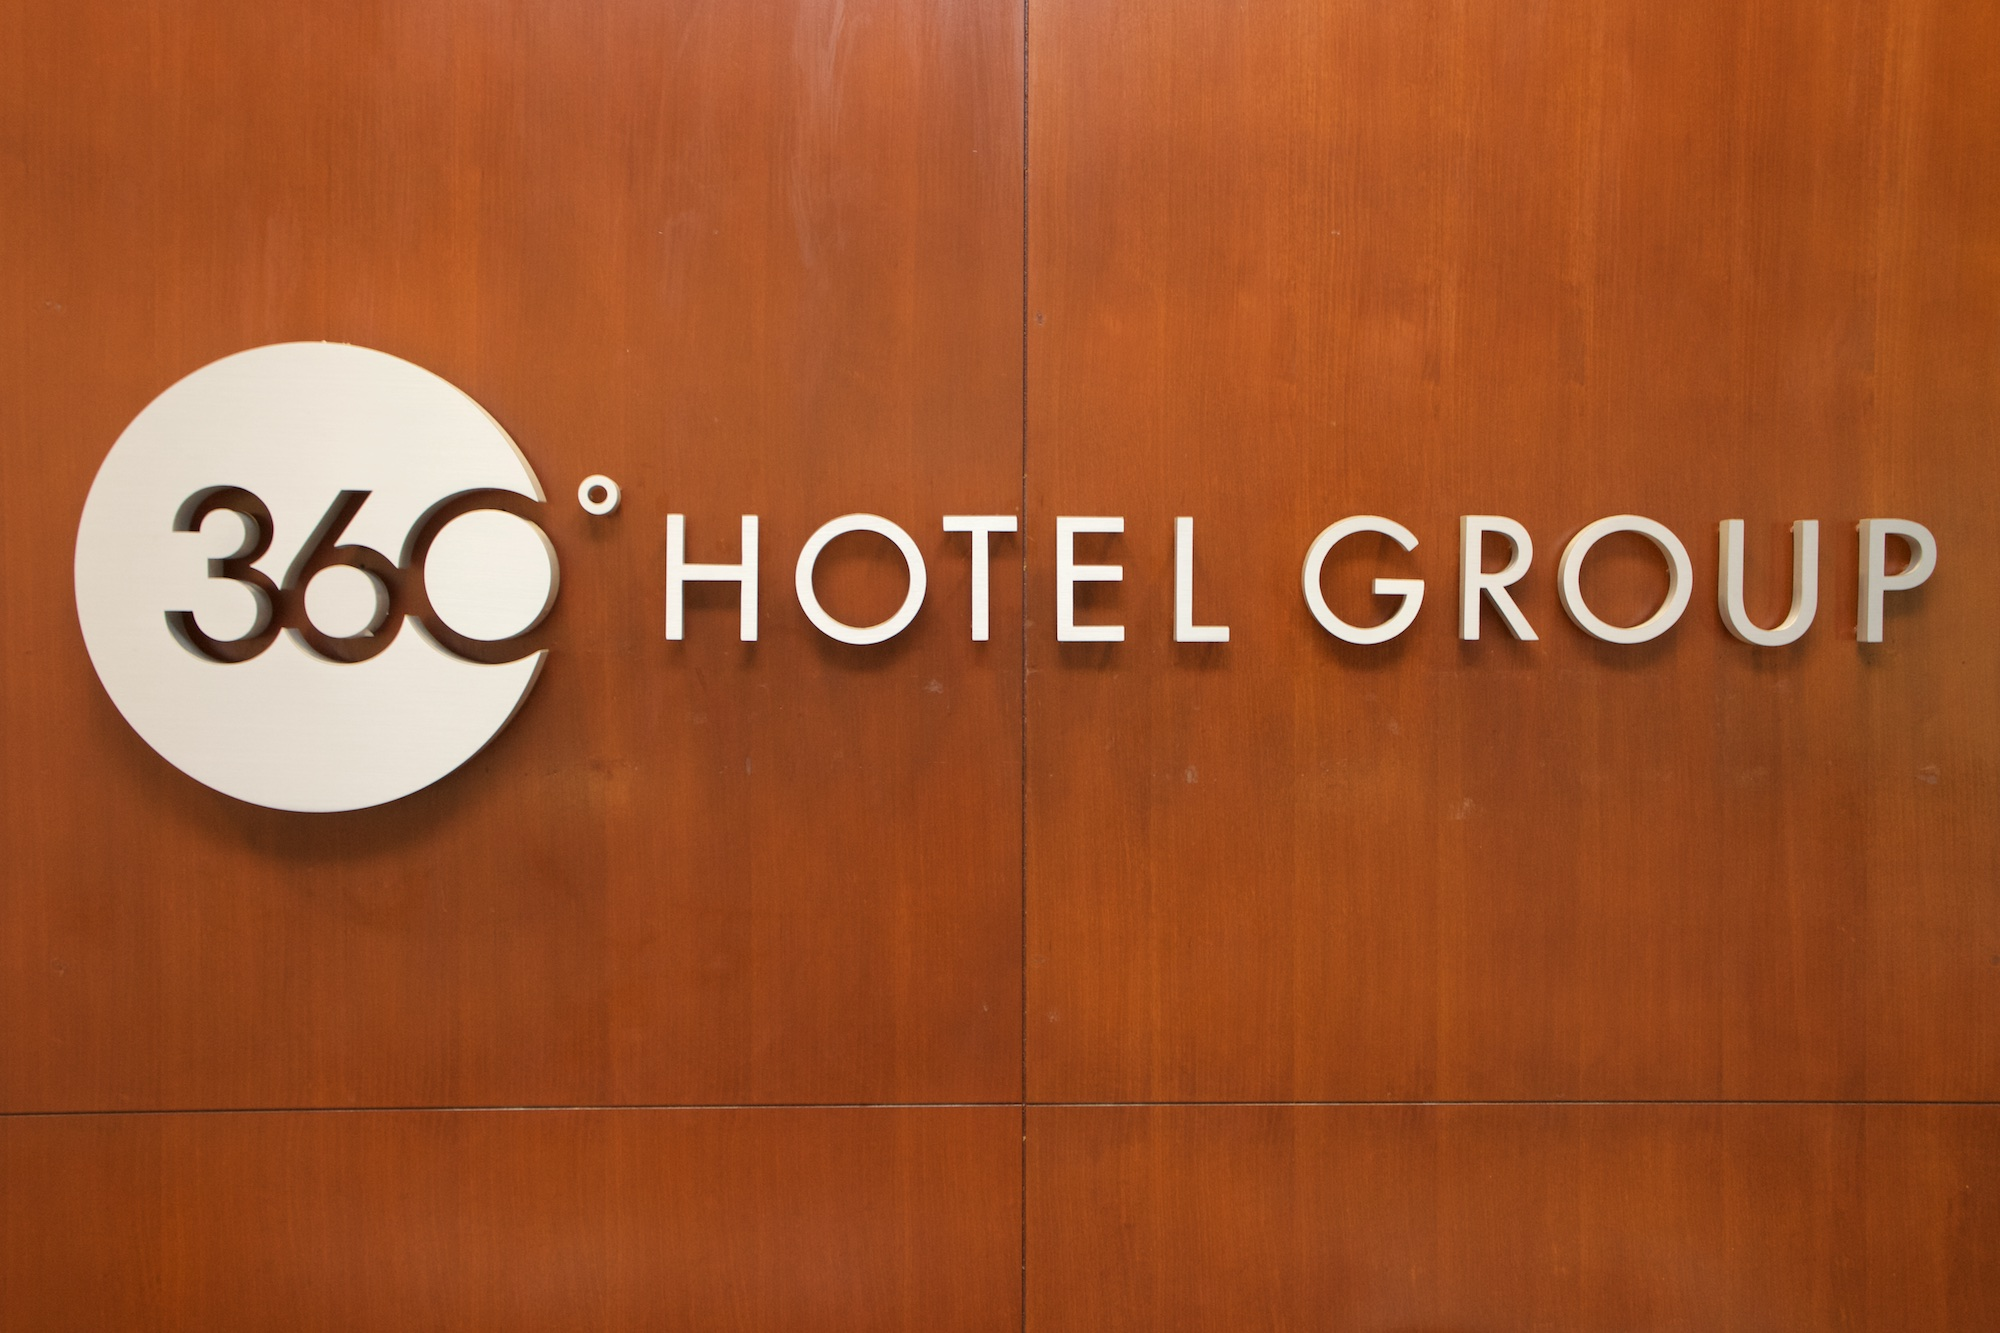 360 Hotel Group